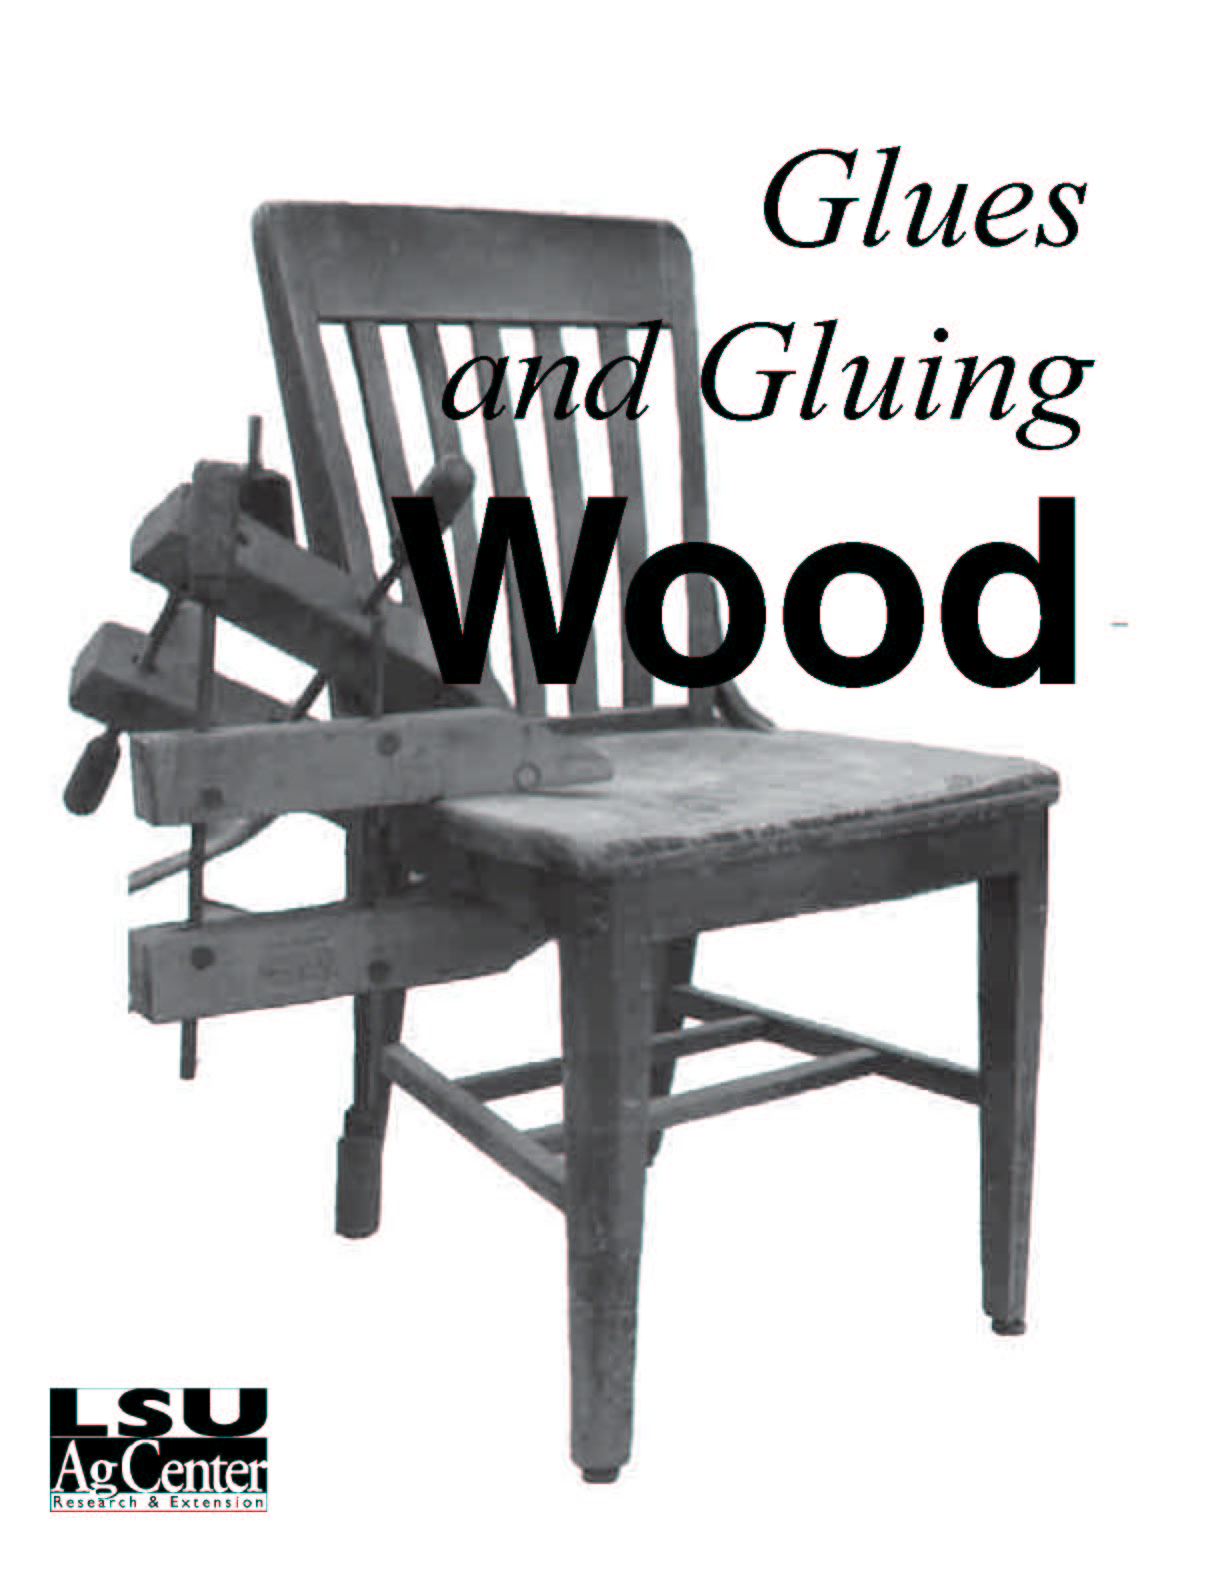 Glues and Gluing Wood